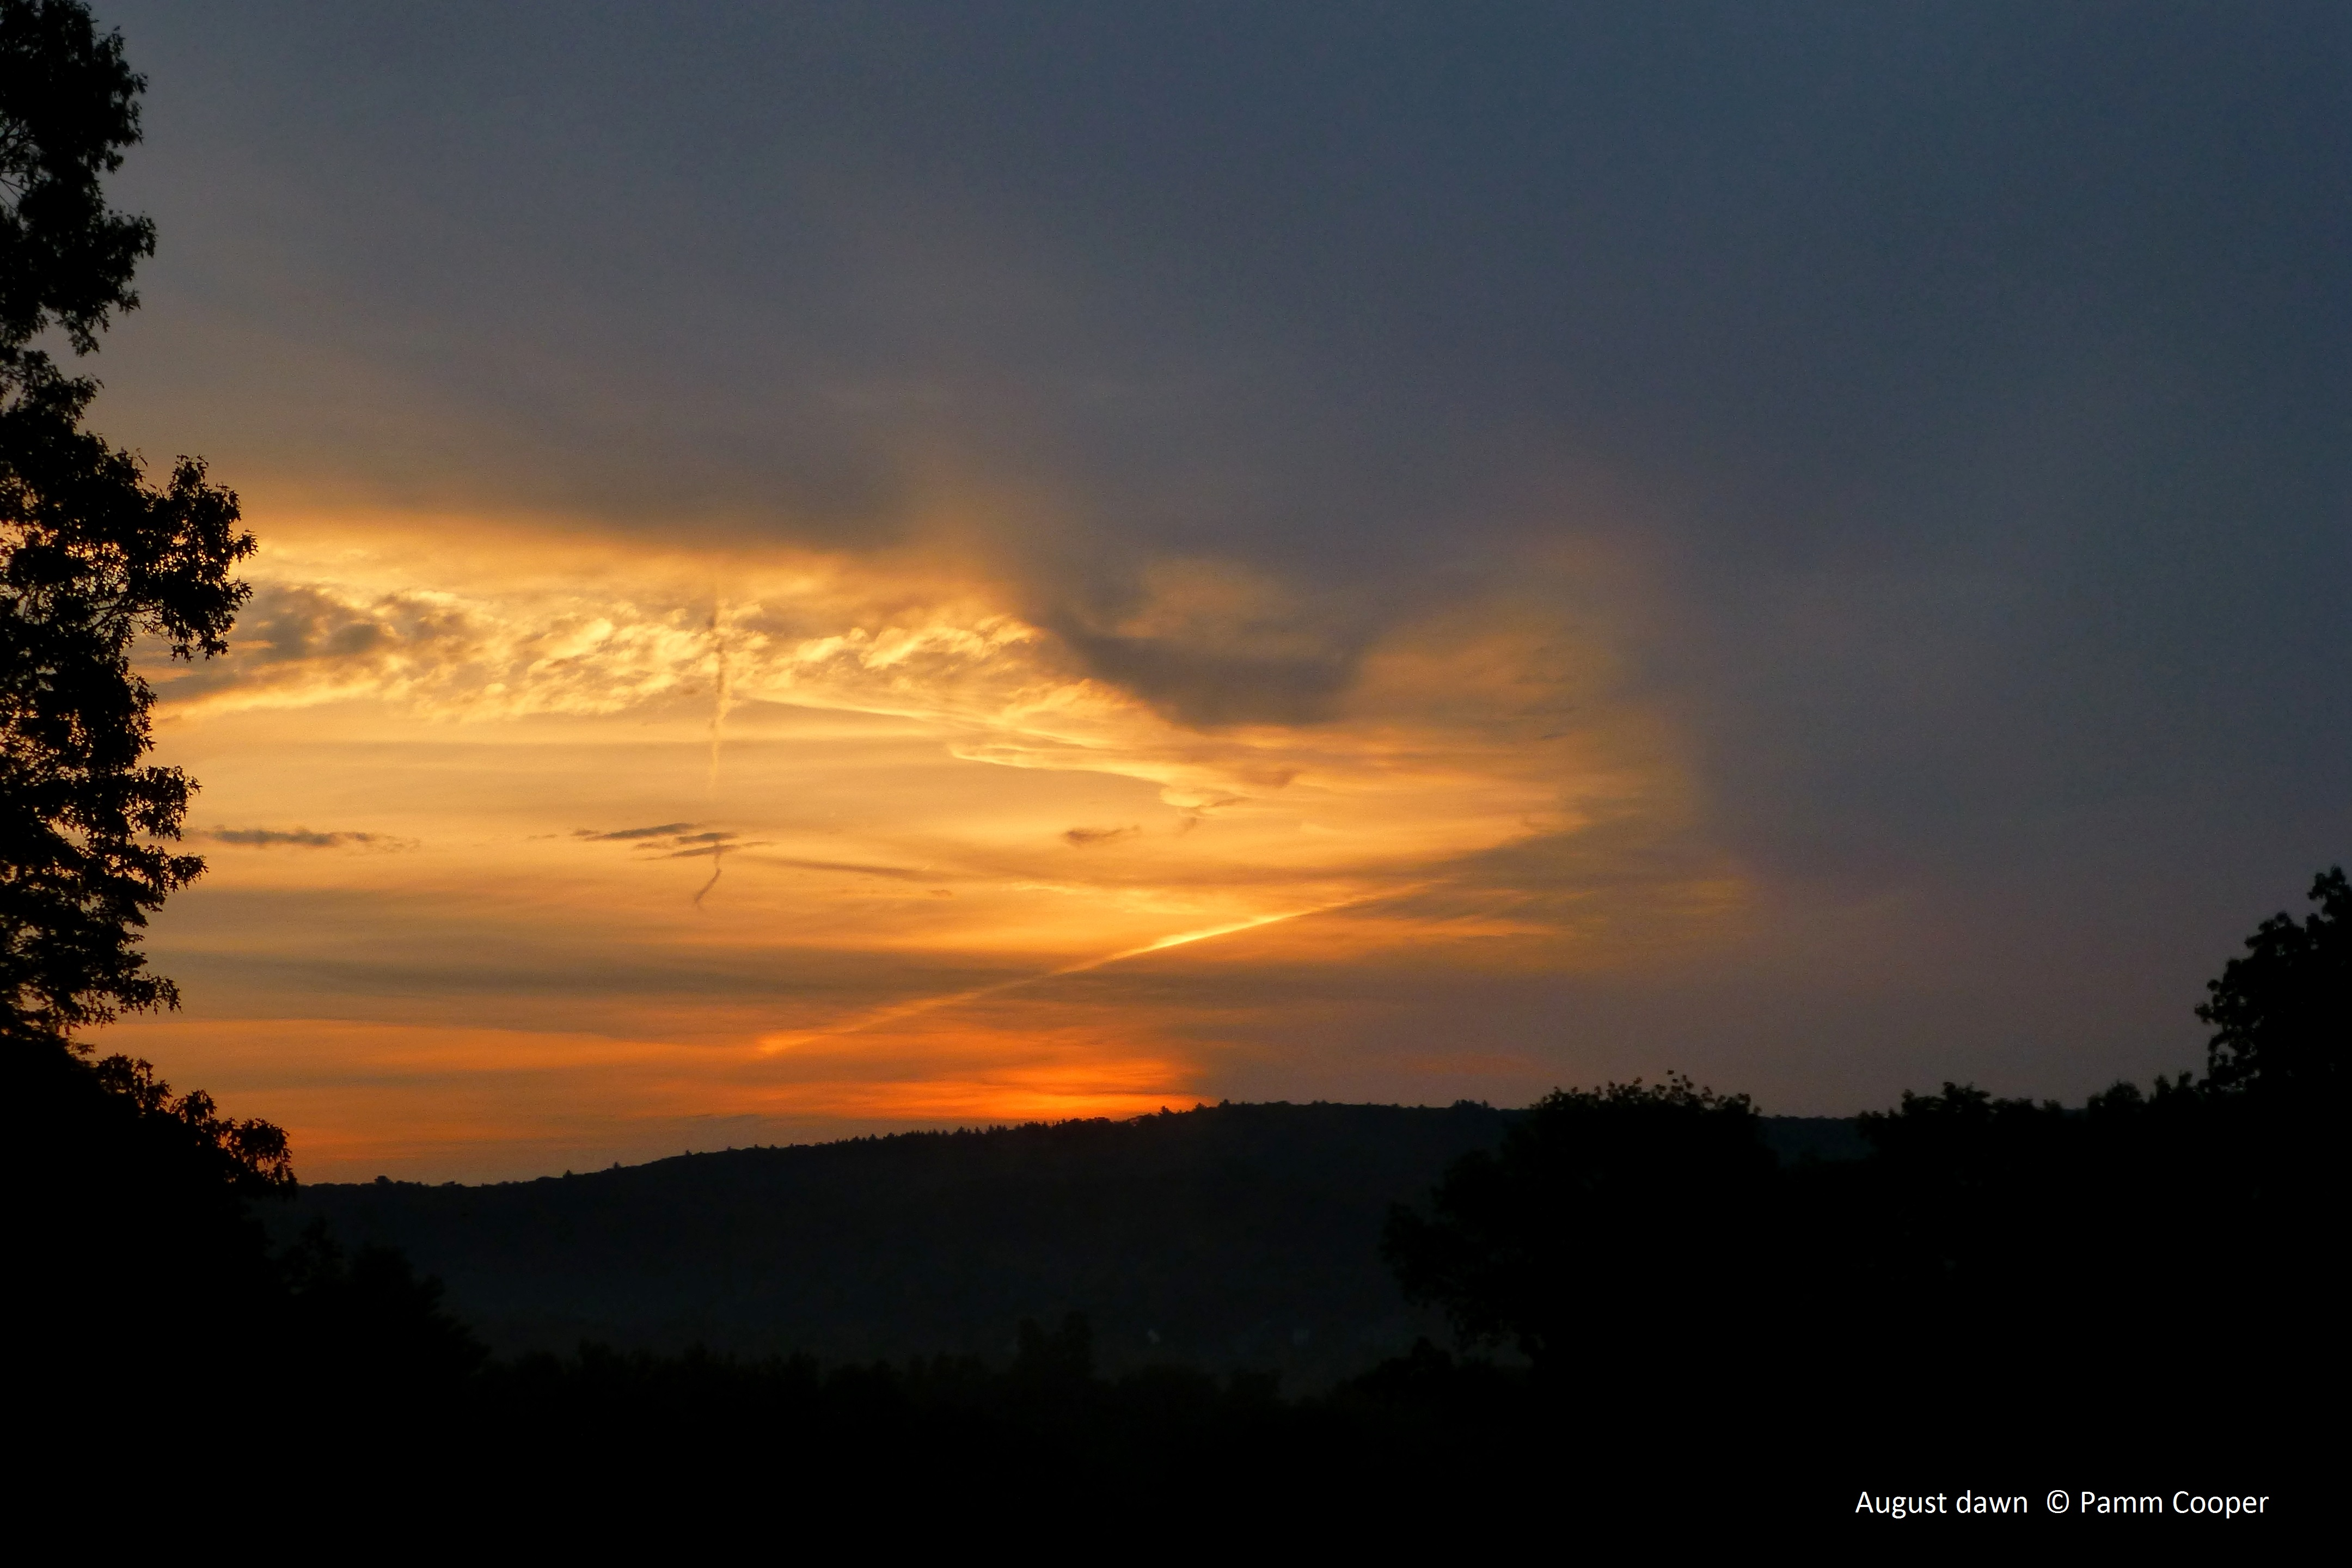 August dawn GHills from 8 8-18-13